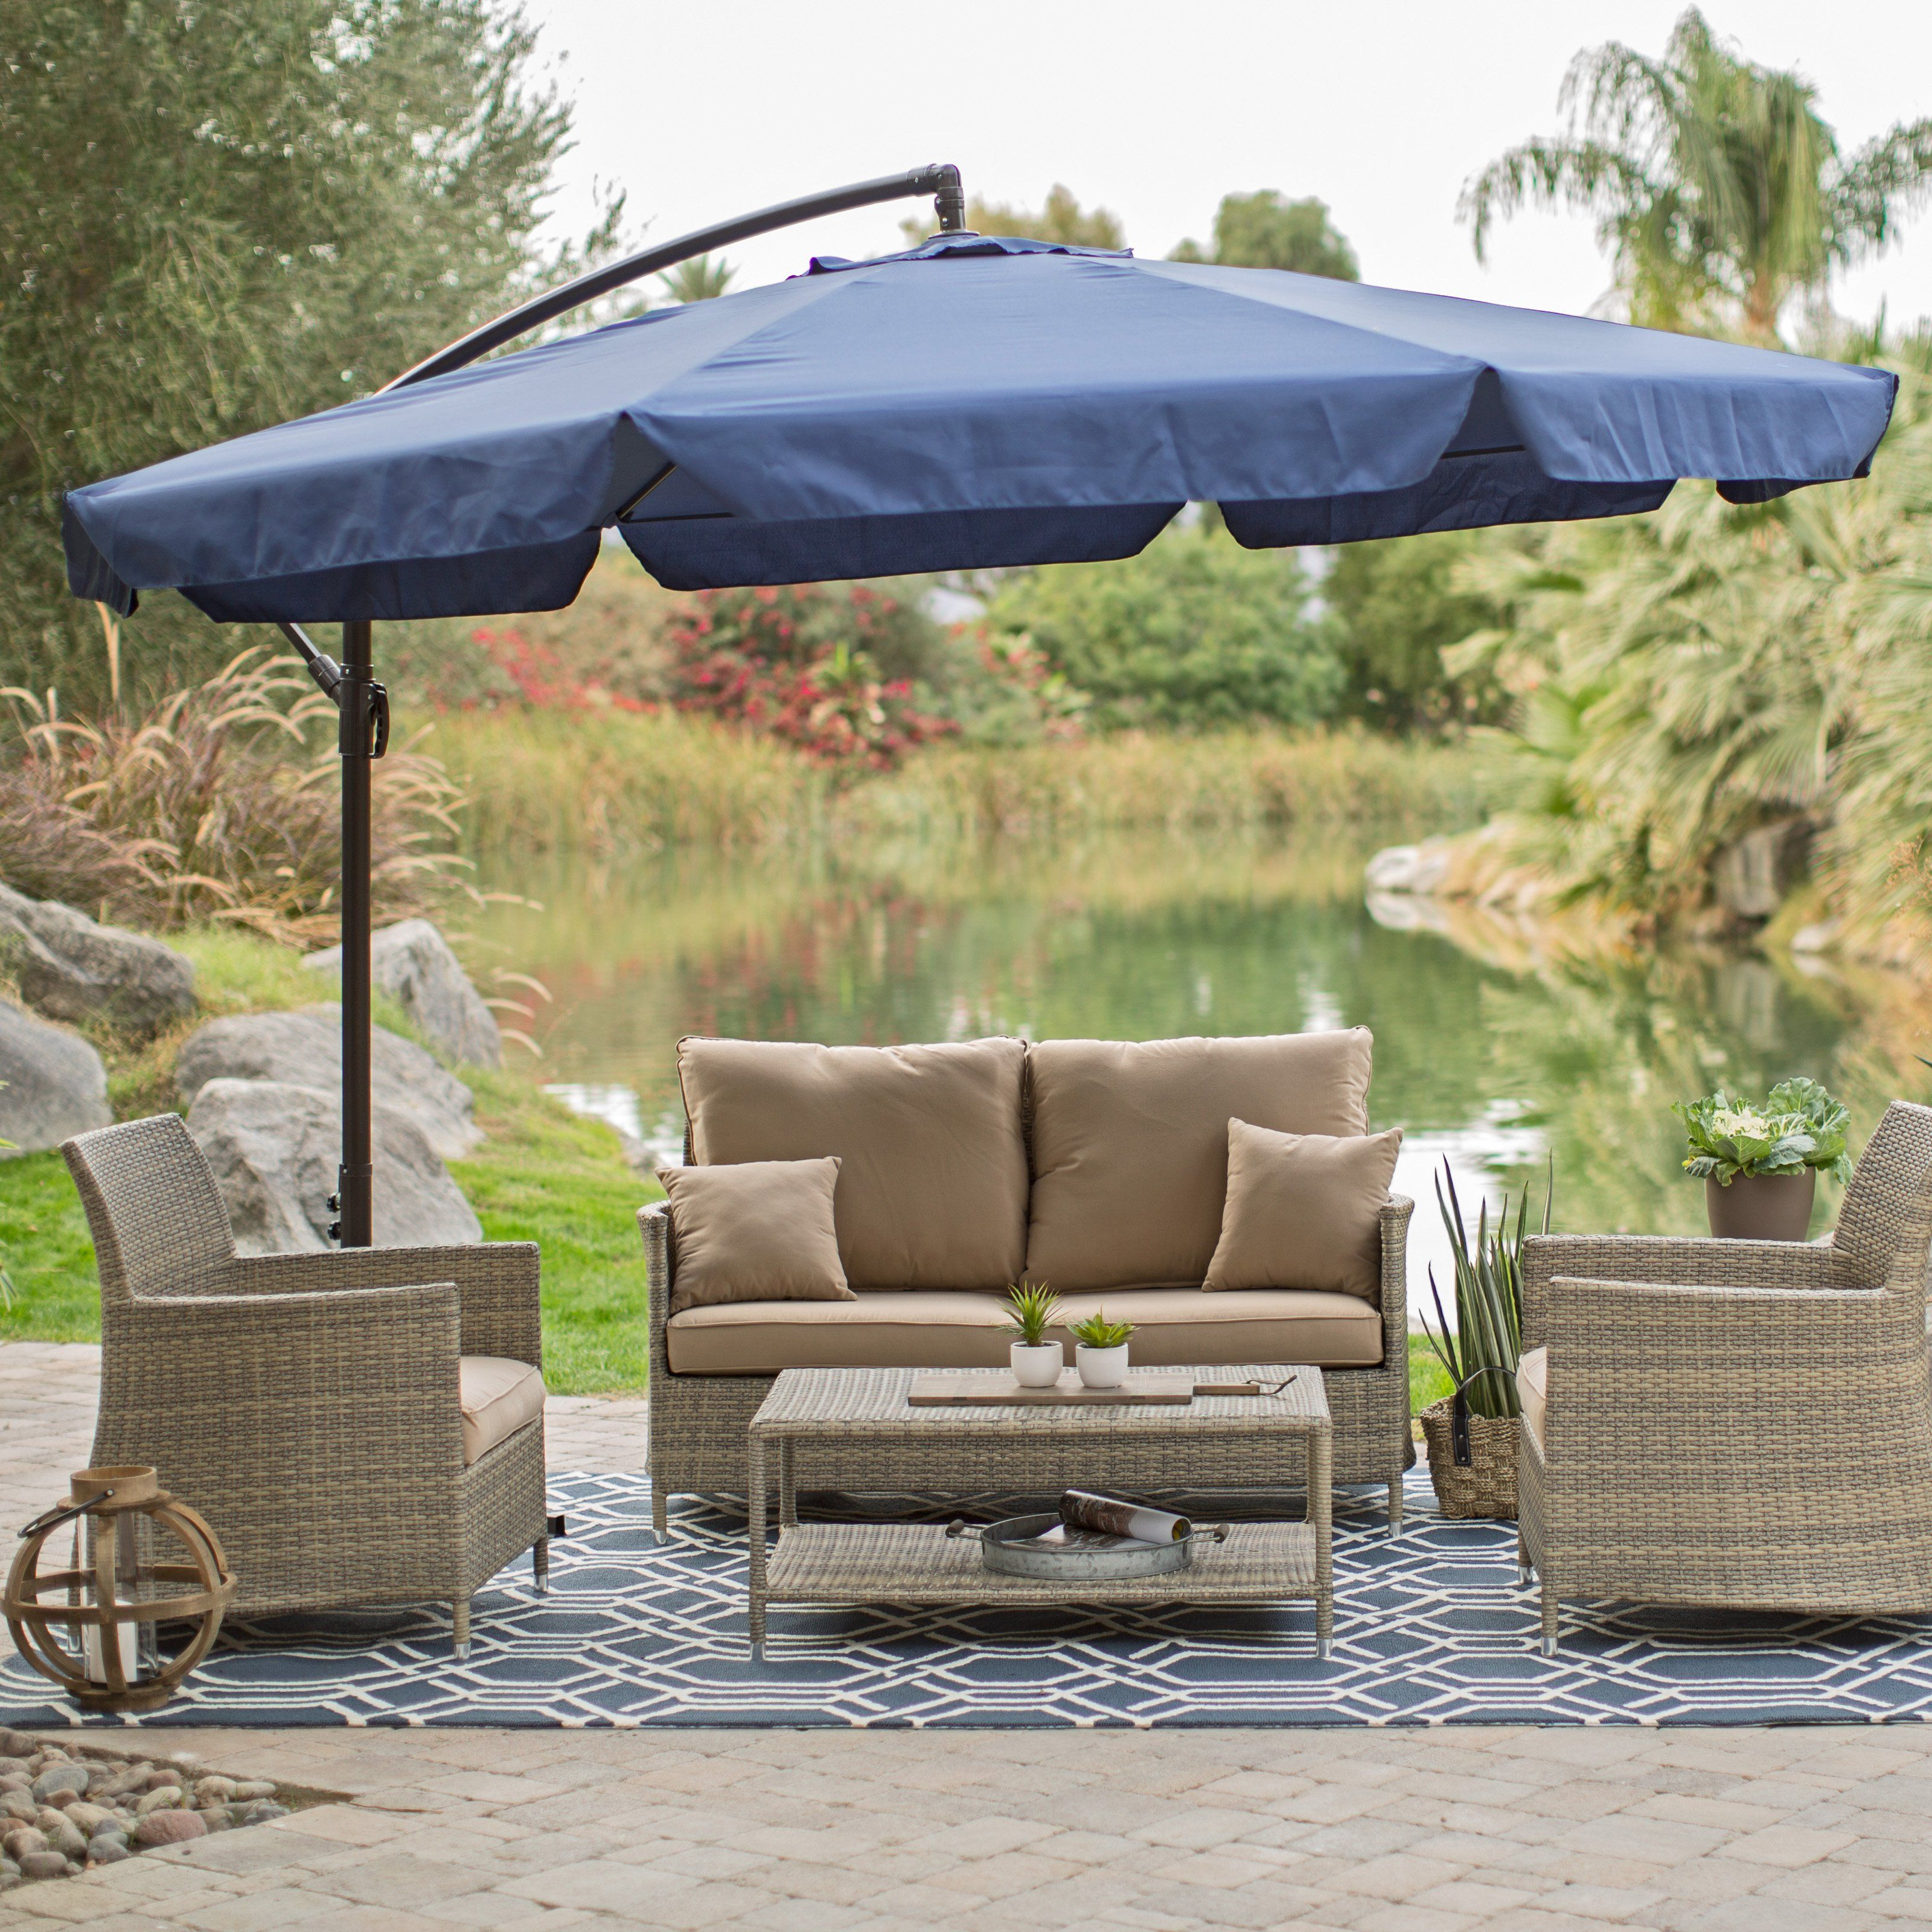 Coral Coast Offset Umbrella With Detachable Netting   Stay In The Shade  With The Coral Coast Gazebo Umbrella With Detachable Netting.